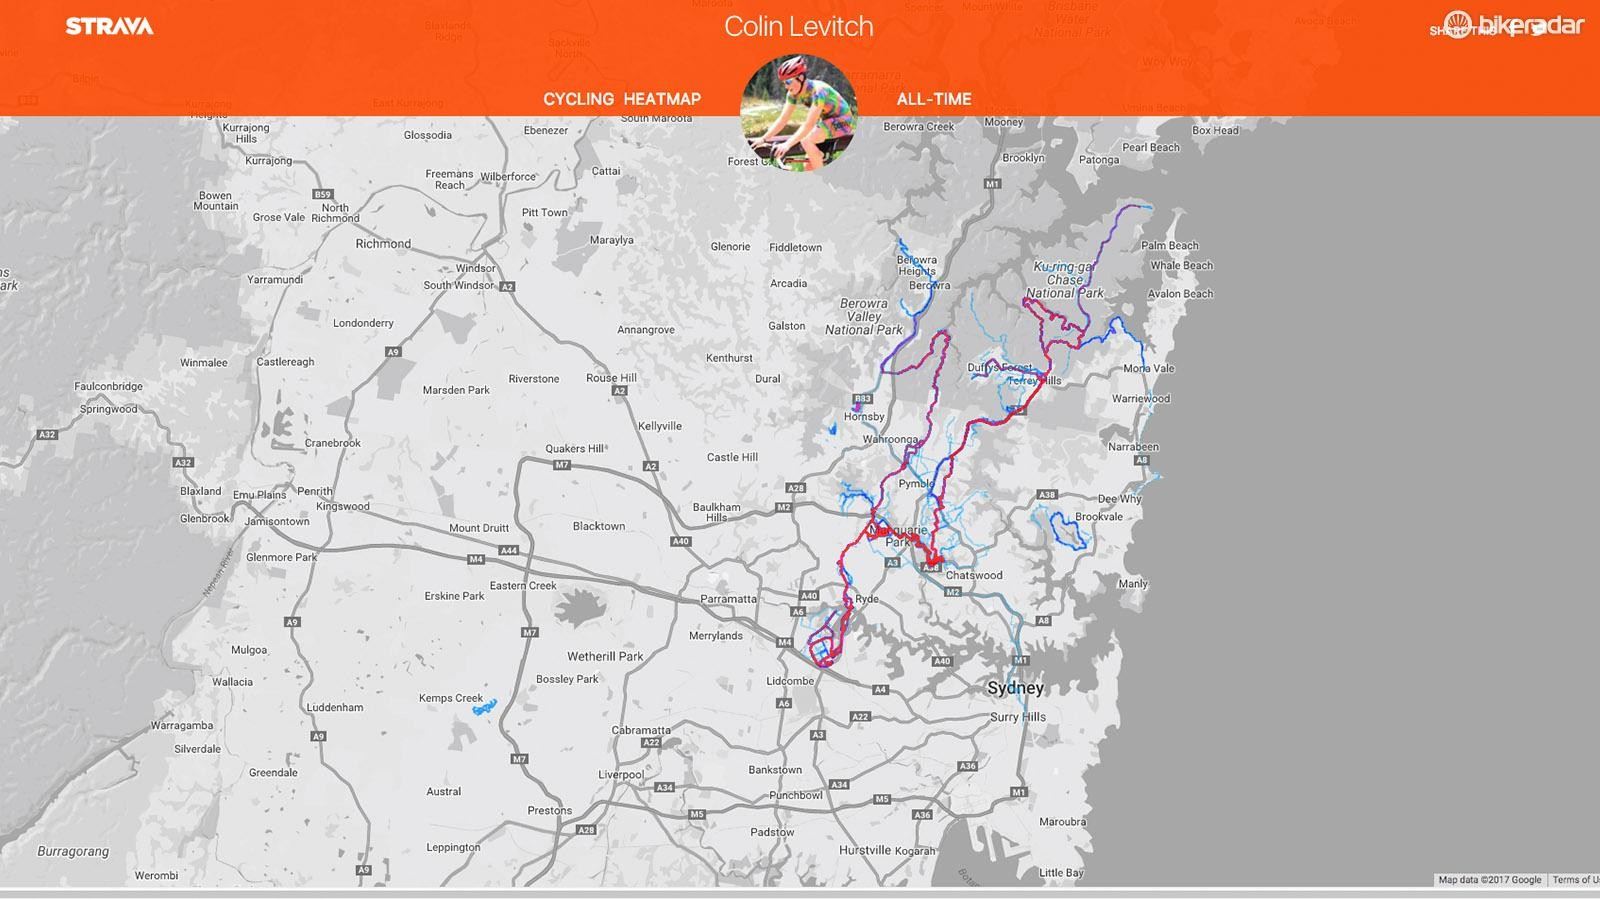 Strava updates Heatmap with a claimed 200,000 years worth of ... on growth map, seven map, terrain map, usa map, radiation map, stock market map, scale of miles on united states map, temperature map, radar map, water consumption map, thematic map, choropleth map, precipitation map, excel map, cluster map, dot density map, satellite map, charting data on a map, world map, ocean currents map,